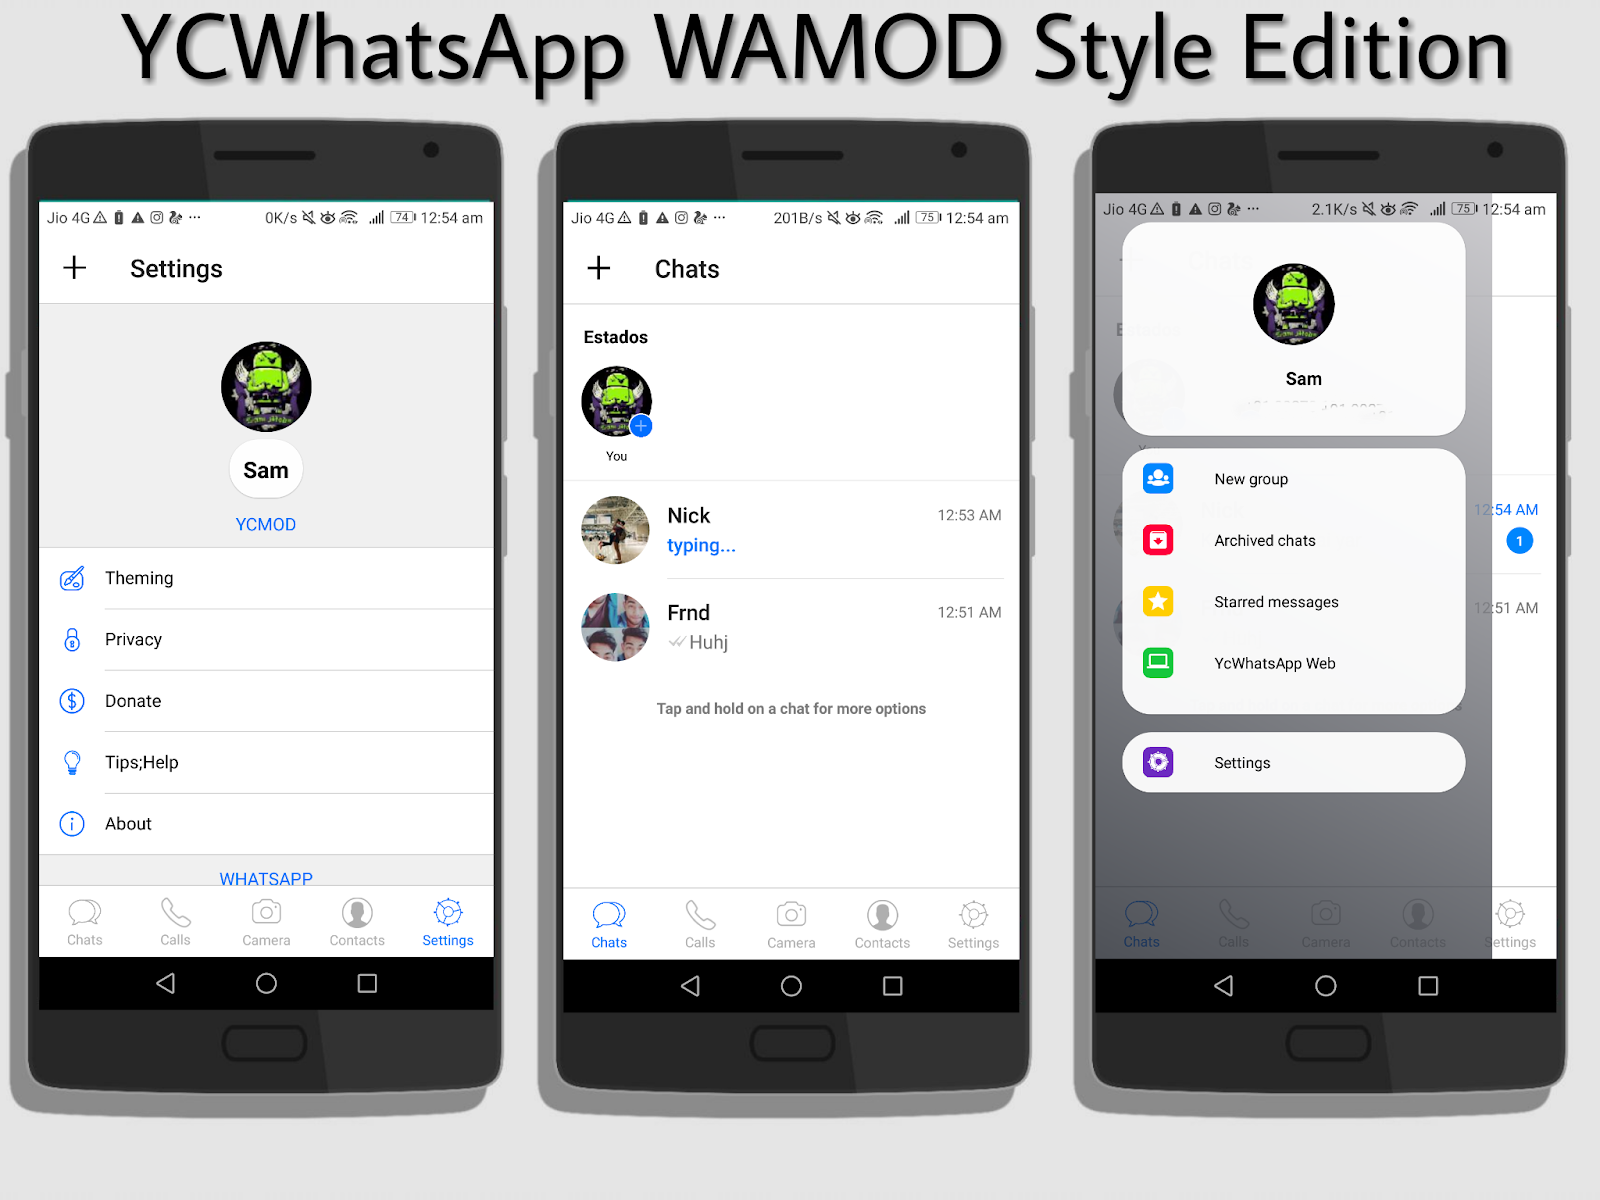 Download whatsapp for android 2.4